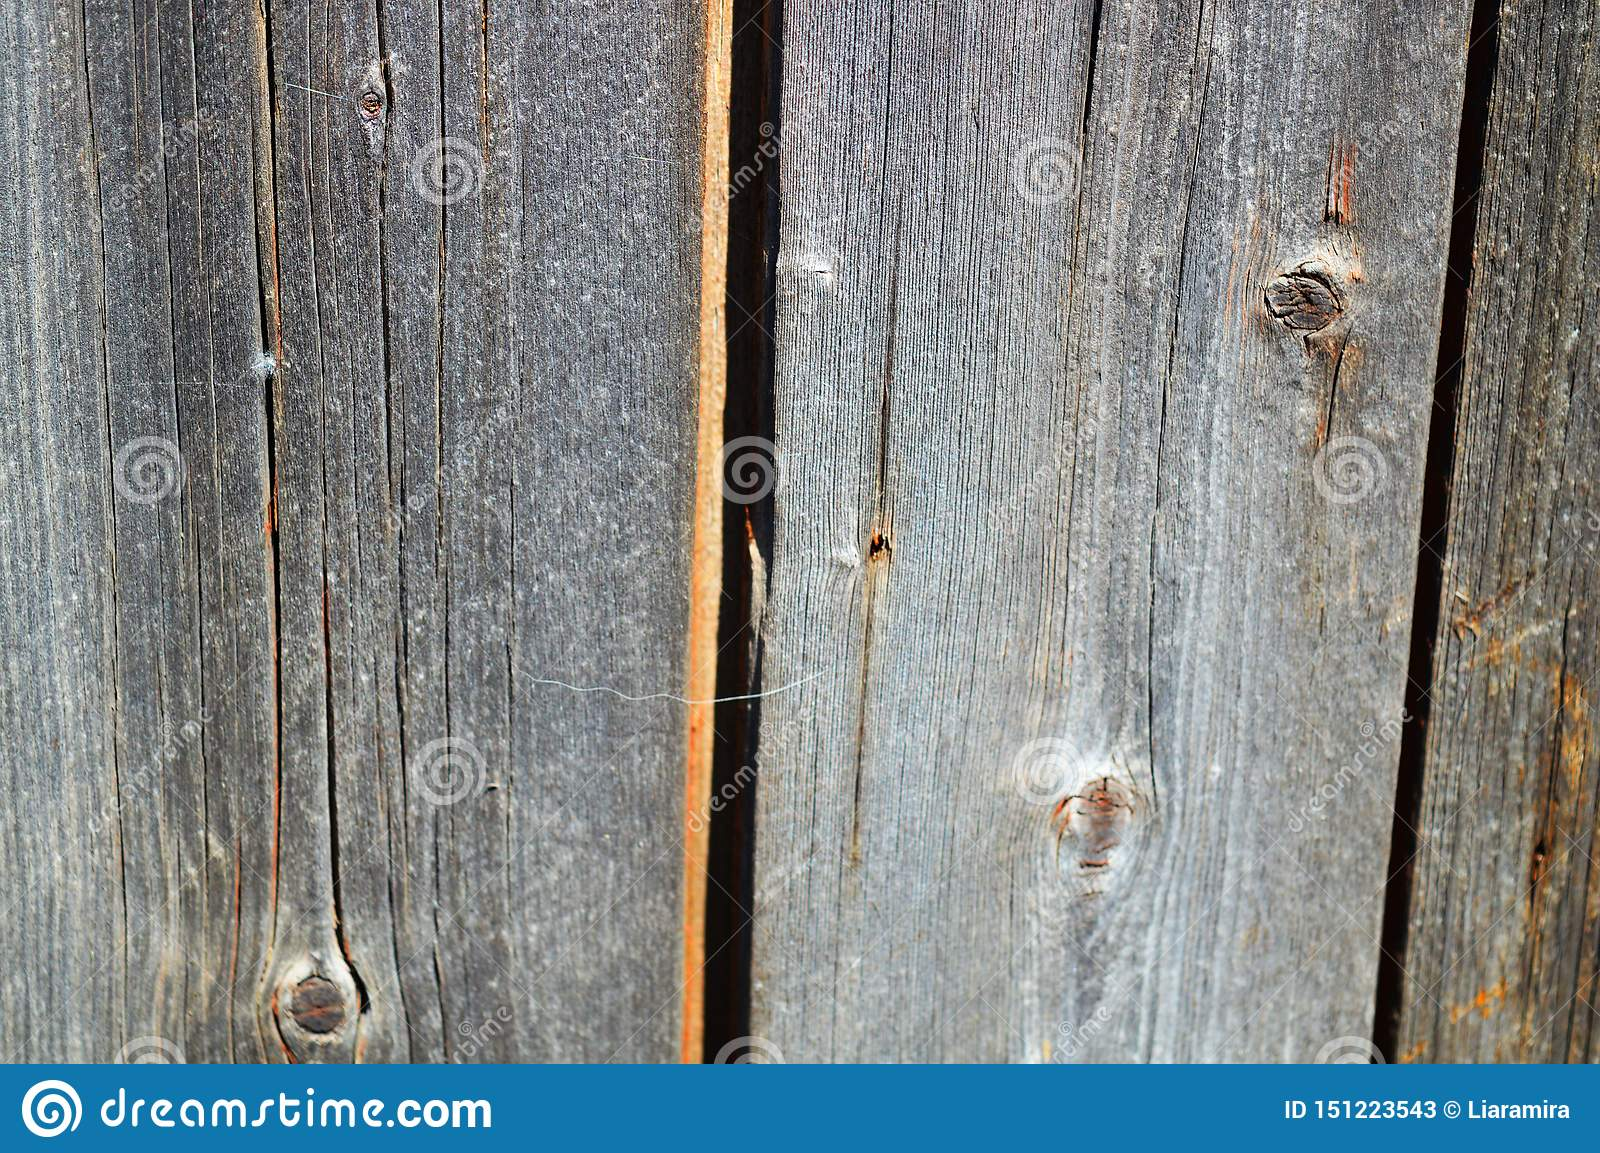 Wooden fence background. Interesting gray texture.